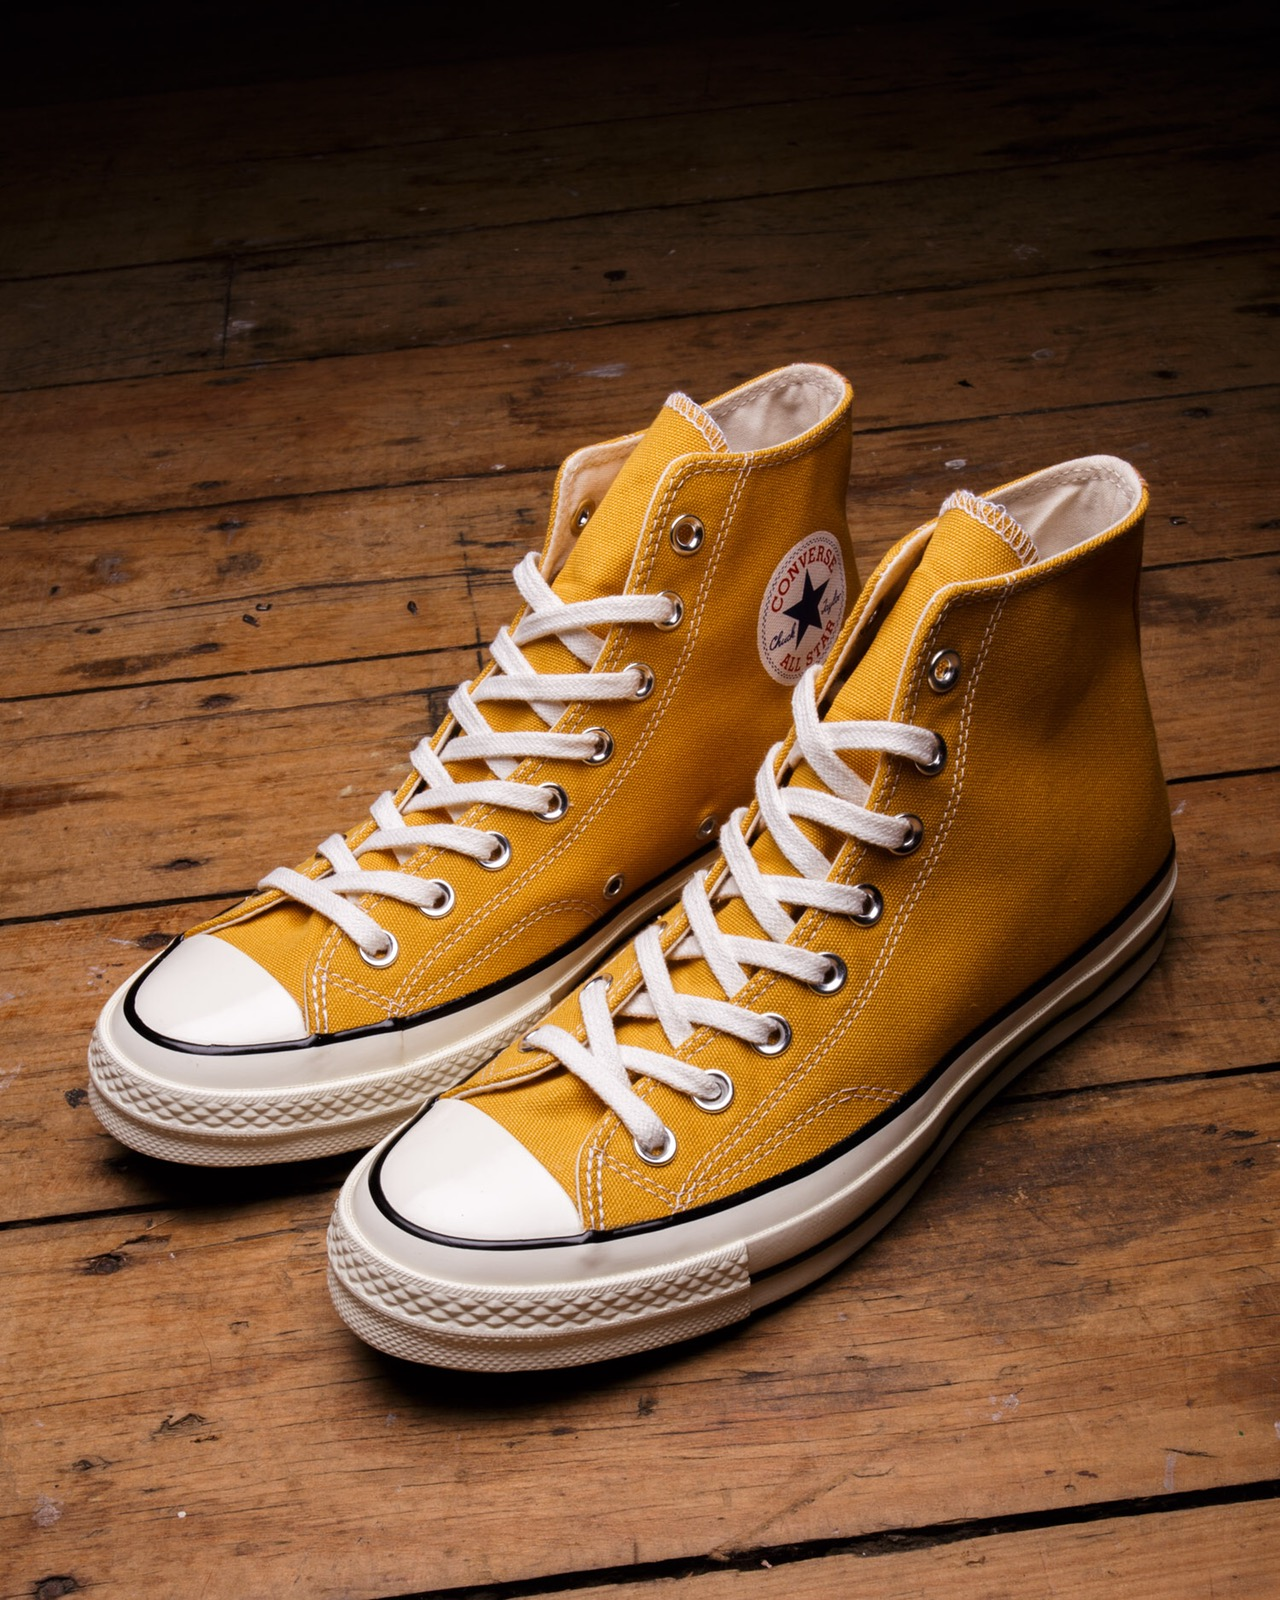 aea1a147bbe Converse First String Chuck Taylor All Star 1970s - Sunflower Size ...